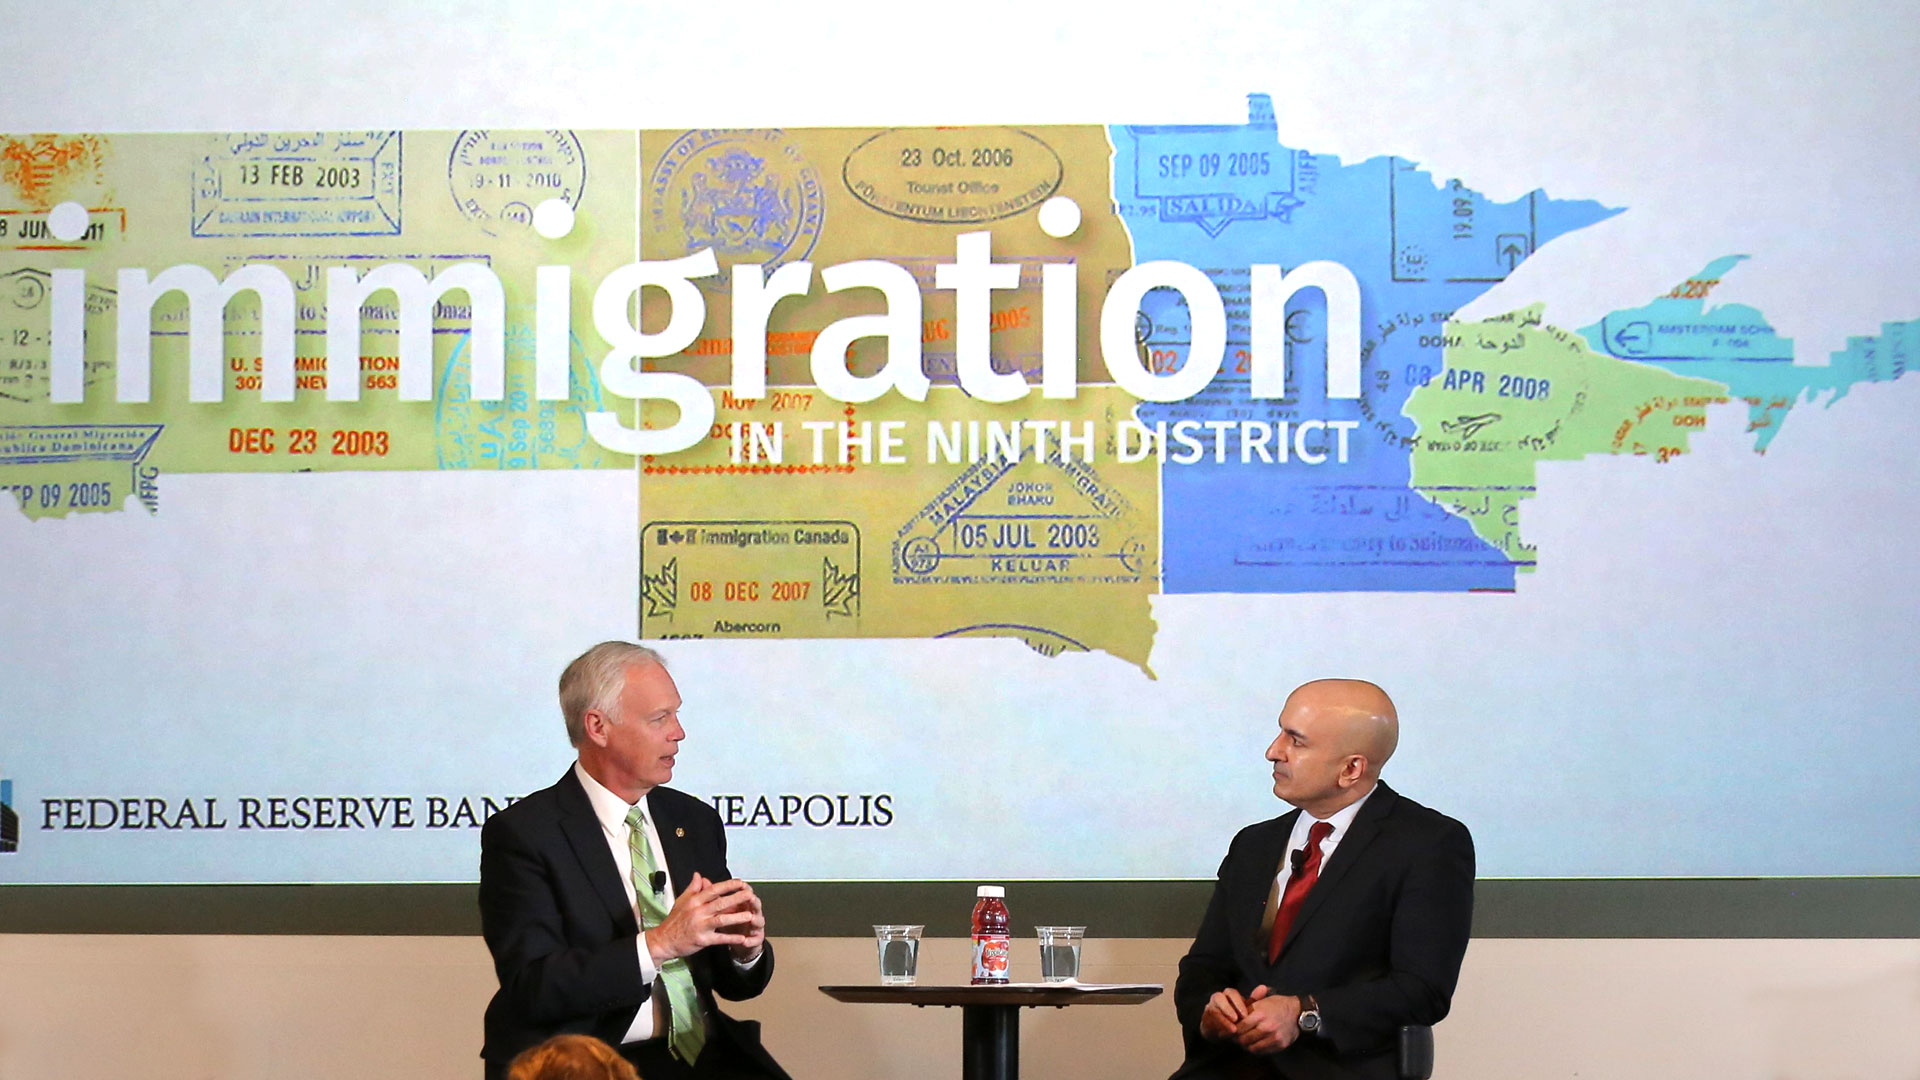 Sen Ron Johnson and Neel Kashkari speak at the conference